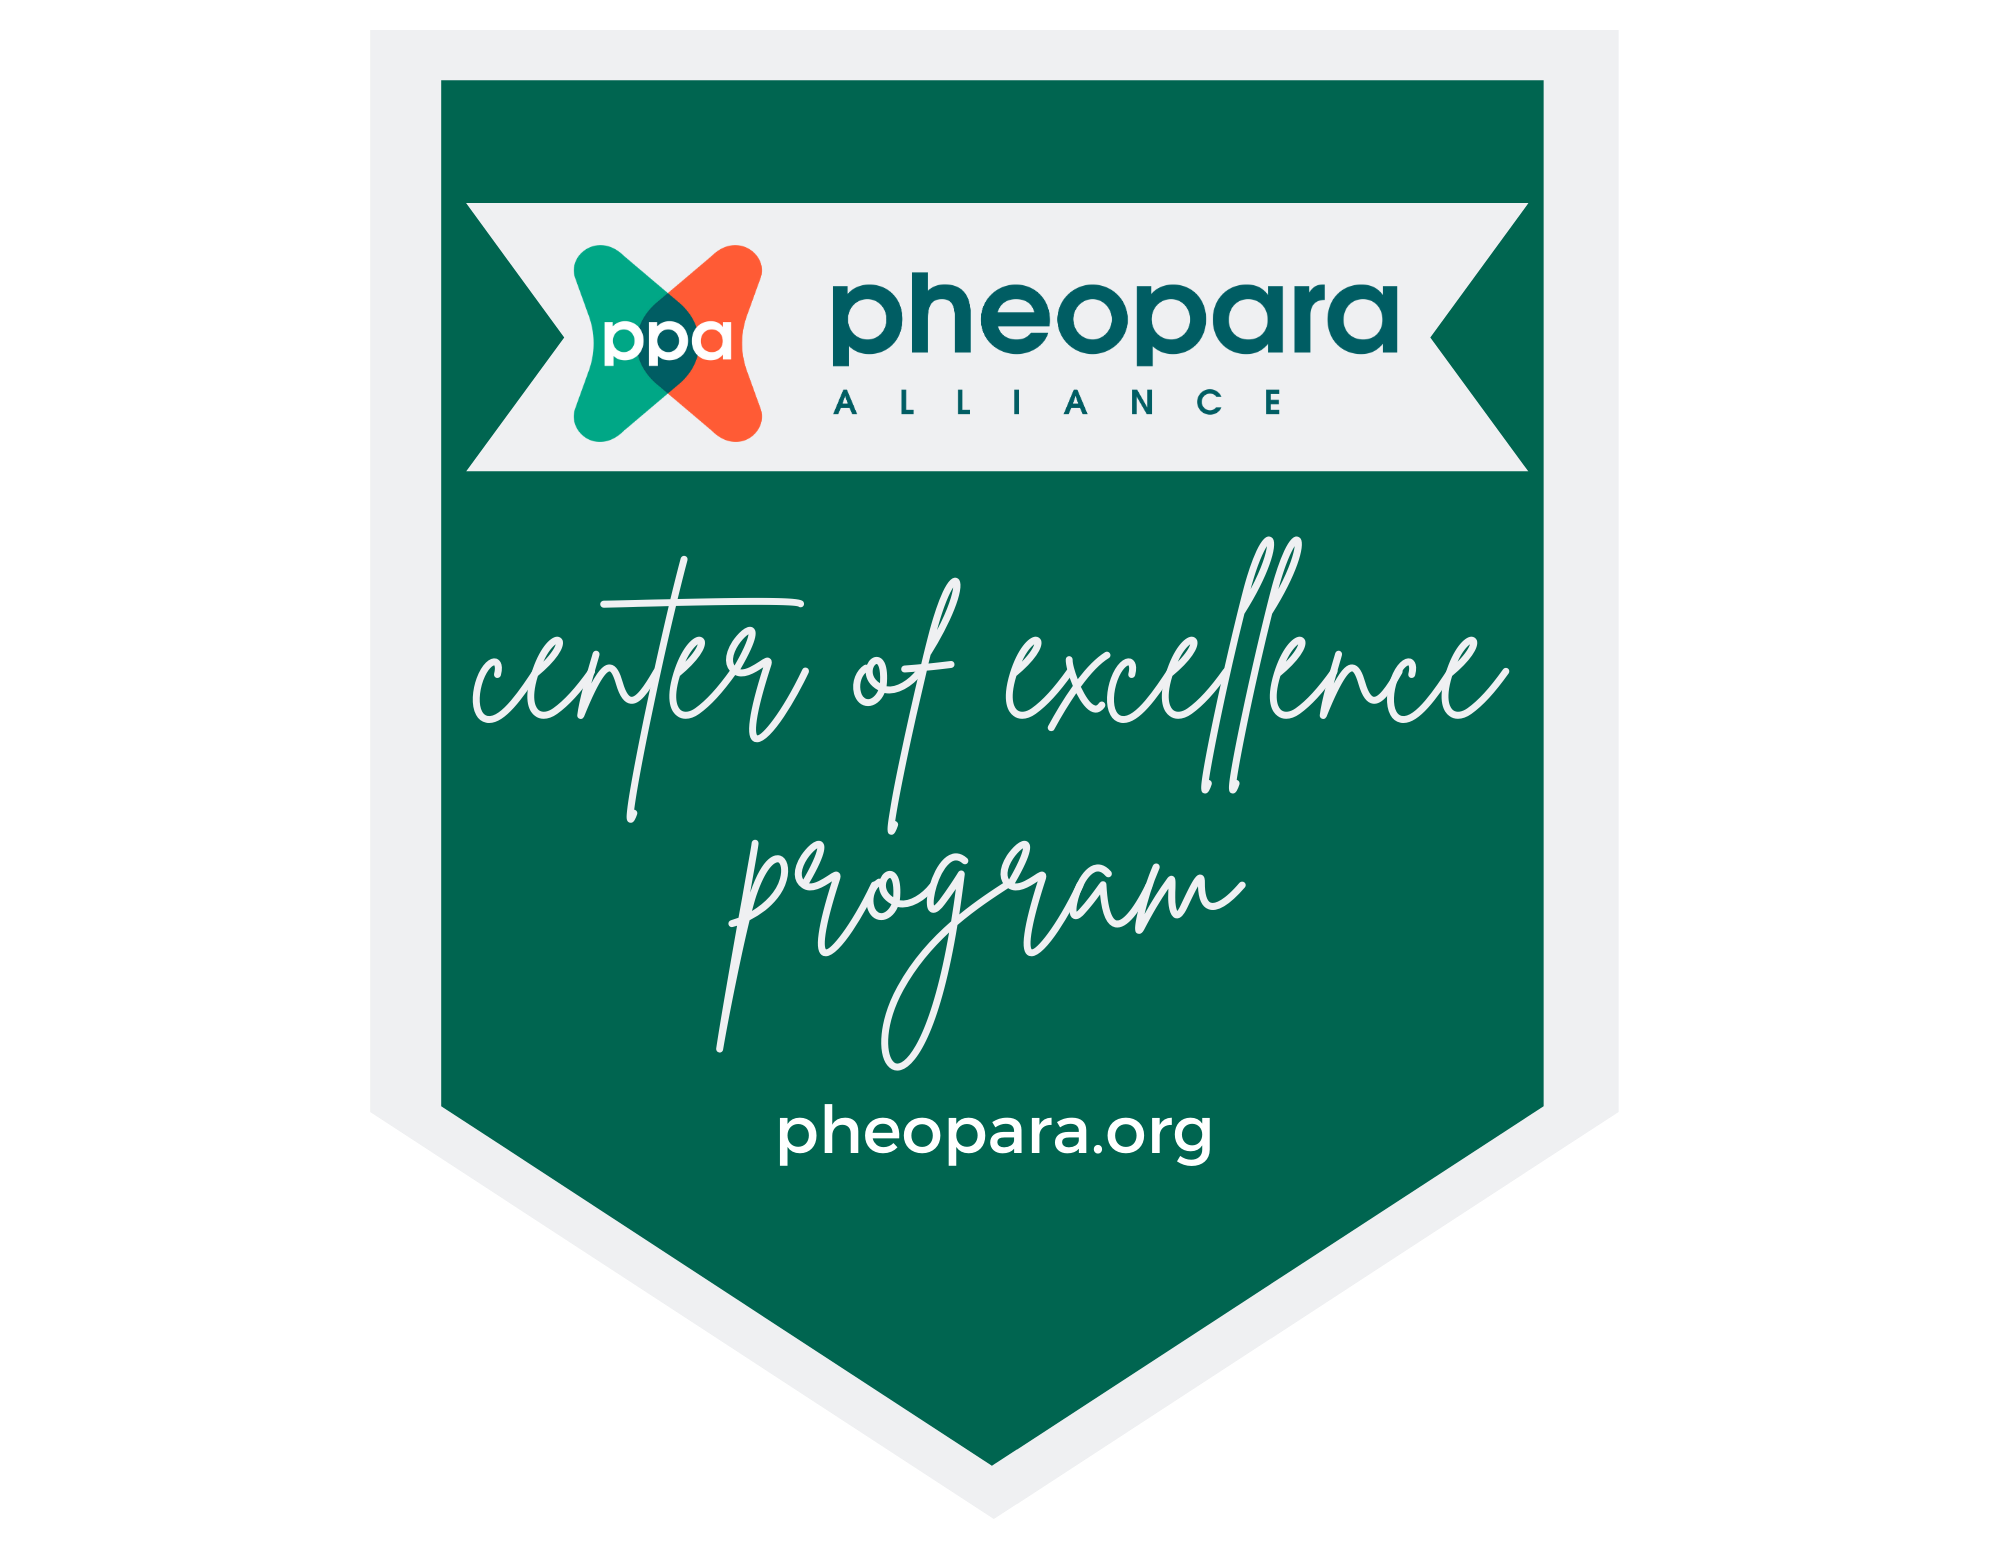 Pheo Para Alliance Announces Launch of Center of Excellence Program to Improve Access for Those With Pheo Para